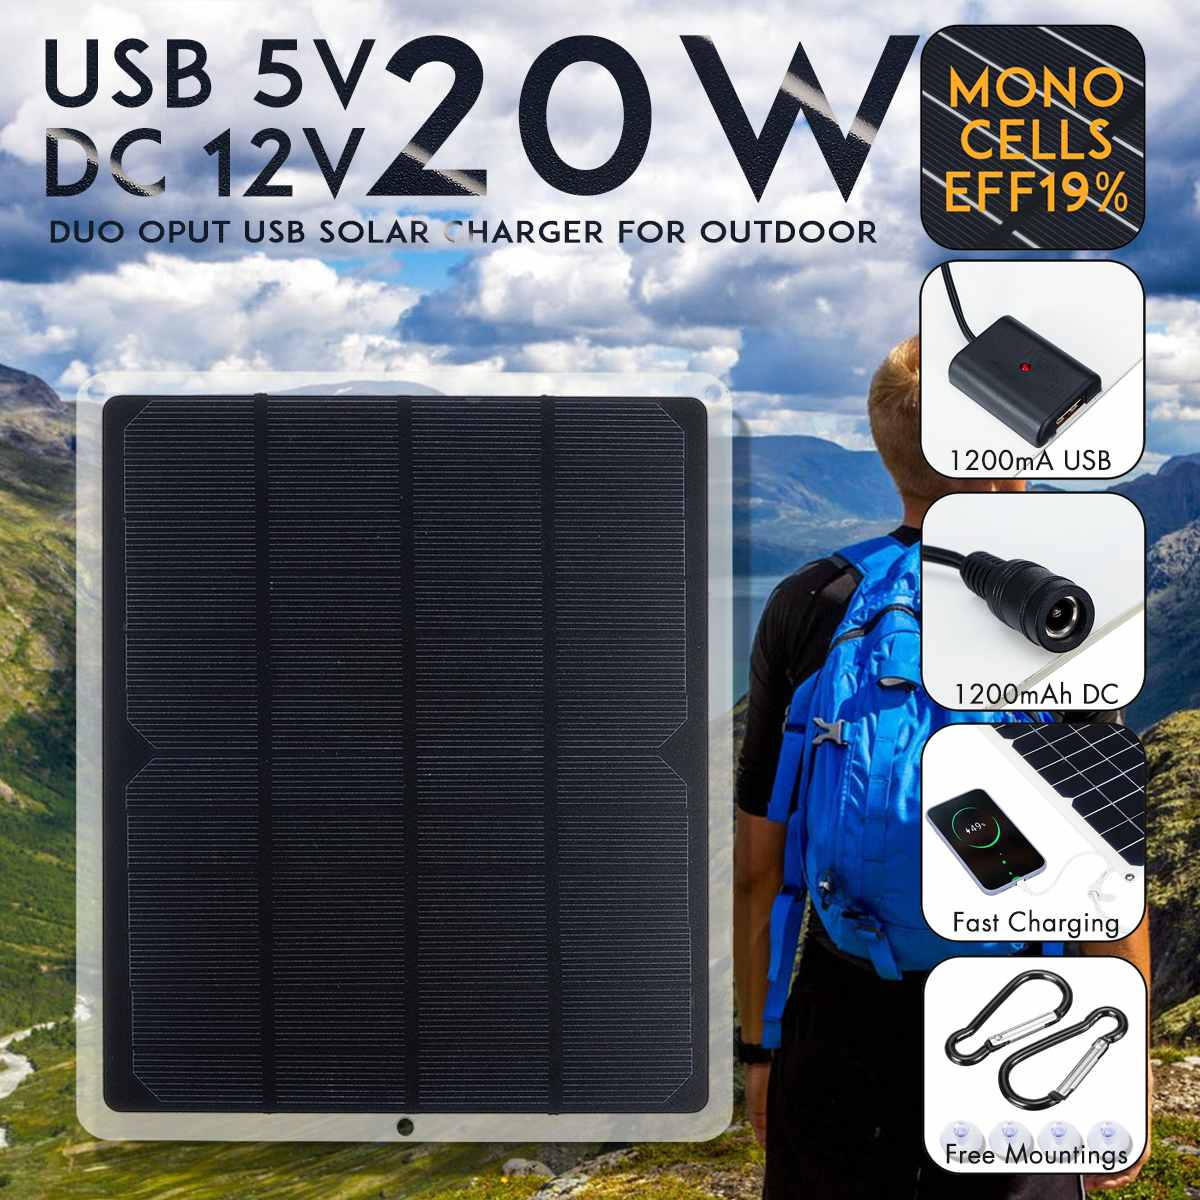 20W 12V Portable Solar Panel Waterproof USB Monocrystalline Solar Panel with Car Charger for Outdoor Camping Hiking Travel